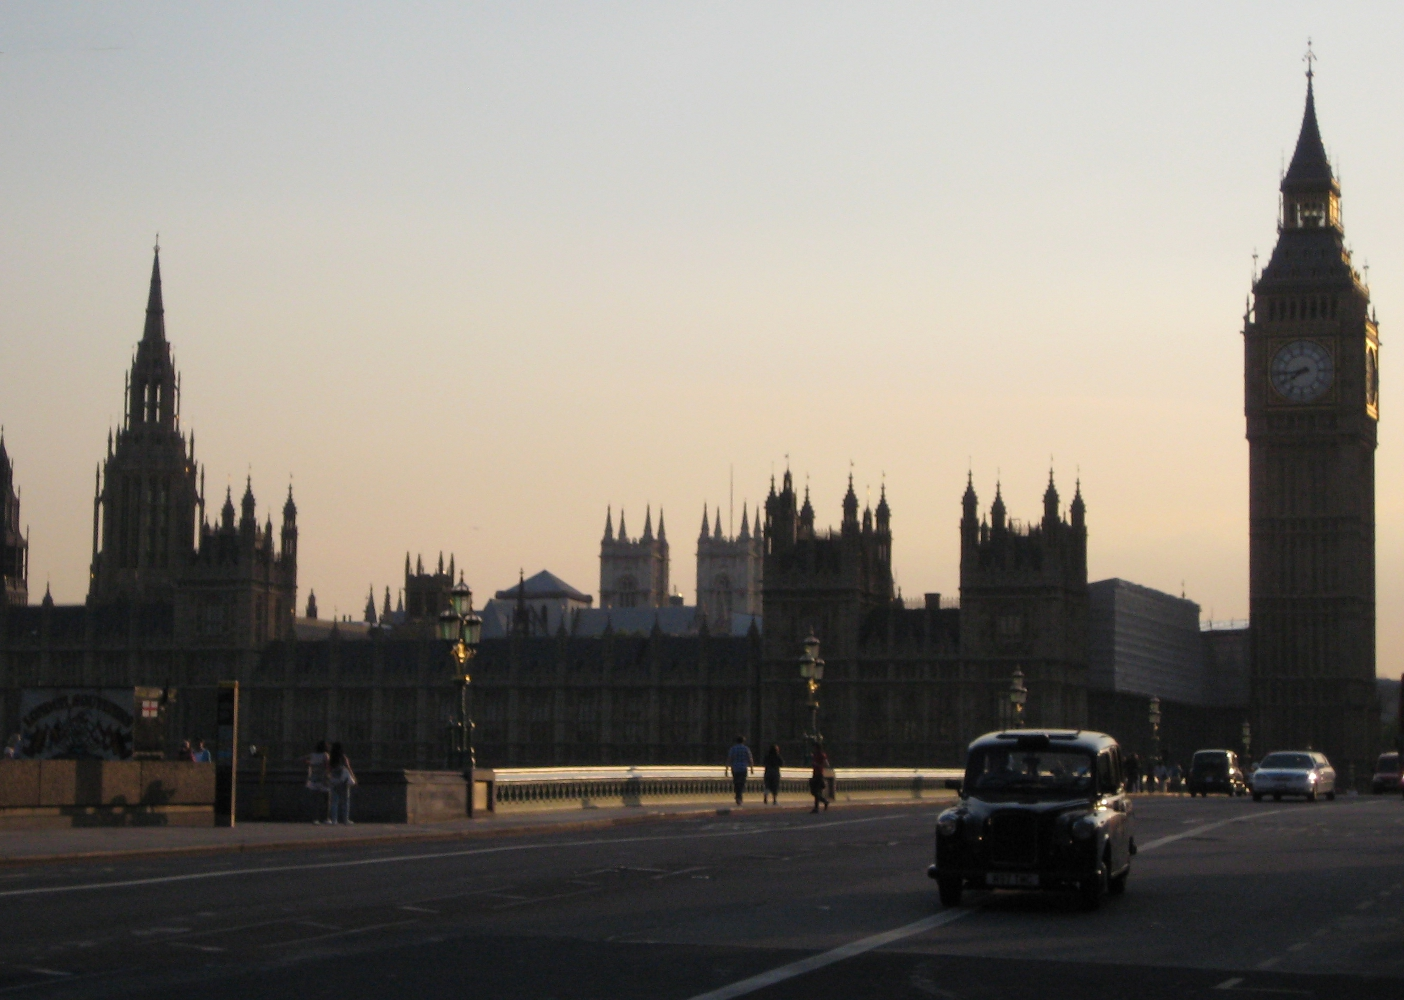 The Houses of Parliament and Westminster Bridge (c) by Philipp Köker 2011